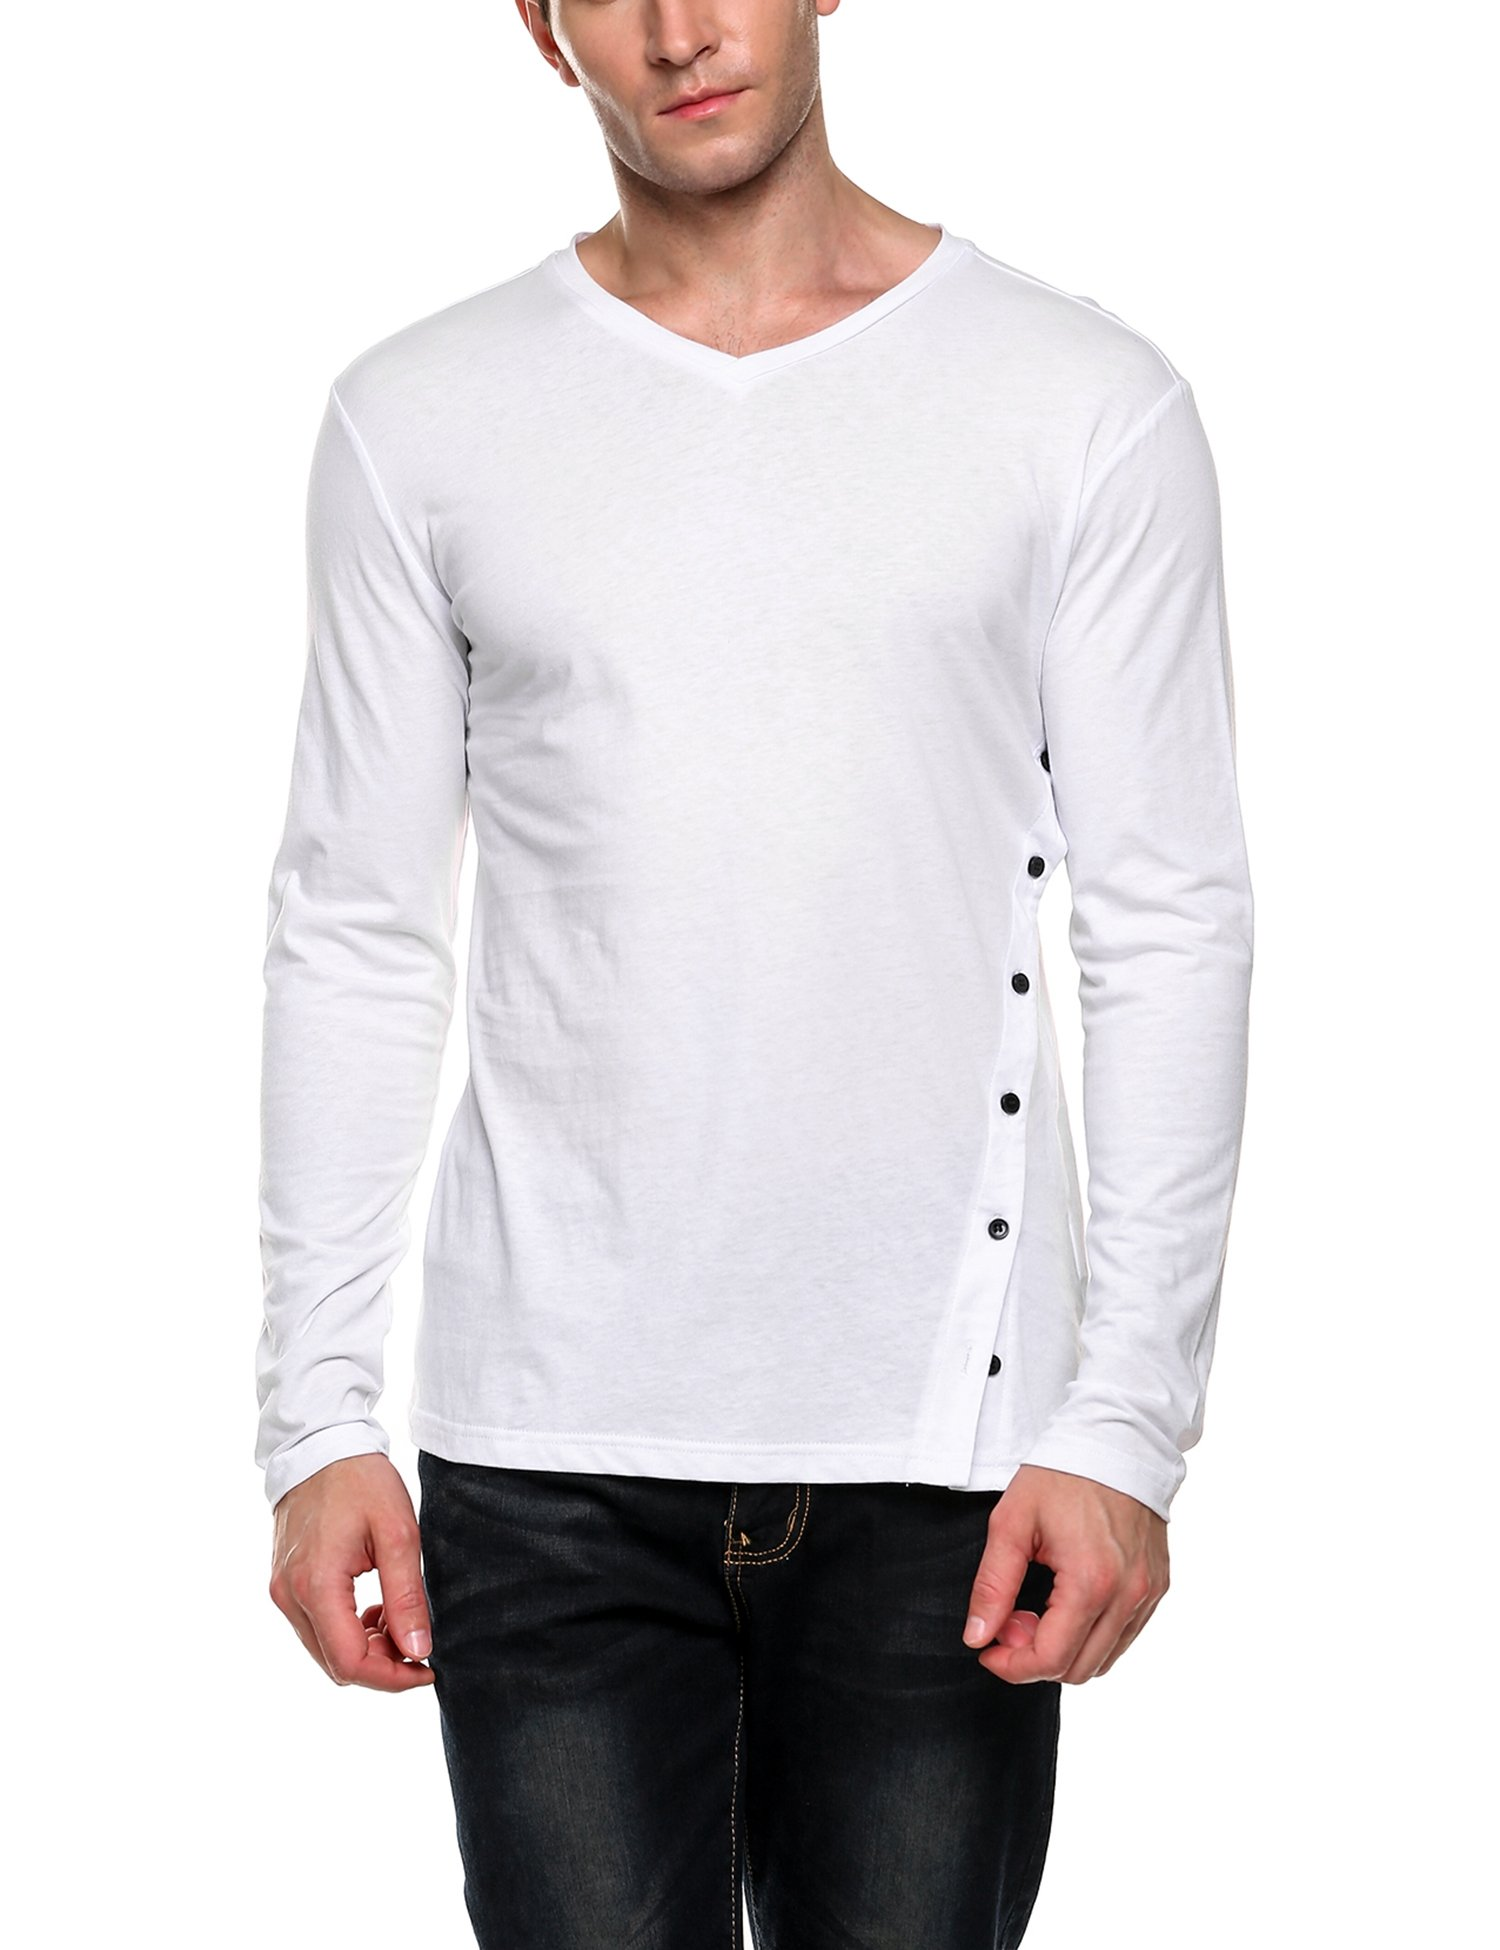 Coofandy Men's Long Sleeve Slim Fit Cotton Tee Shirts V Neck Tops